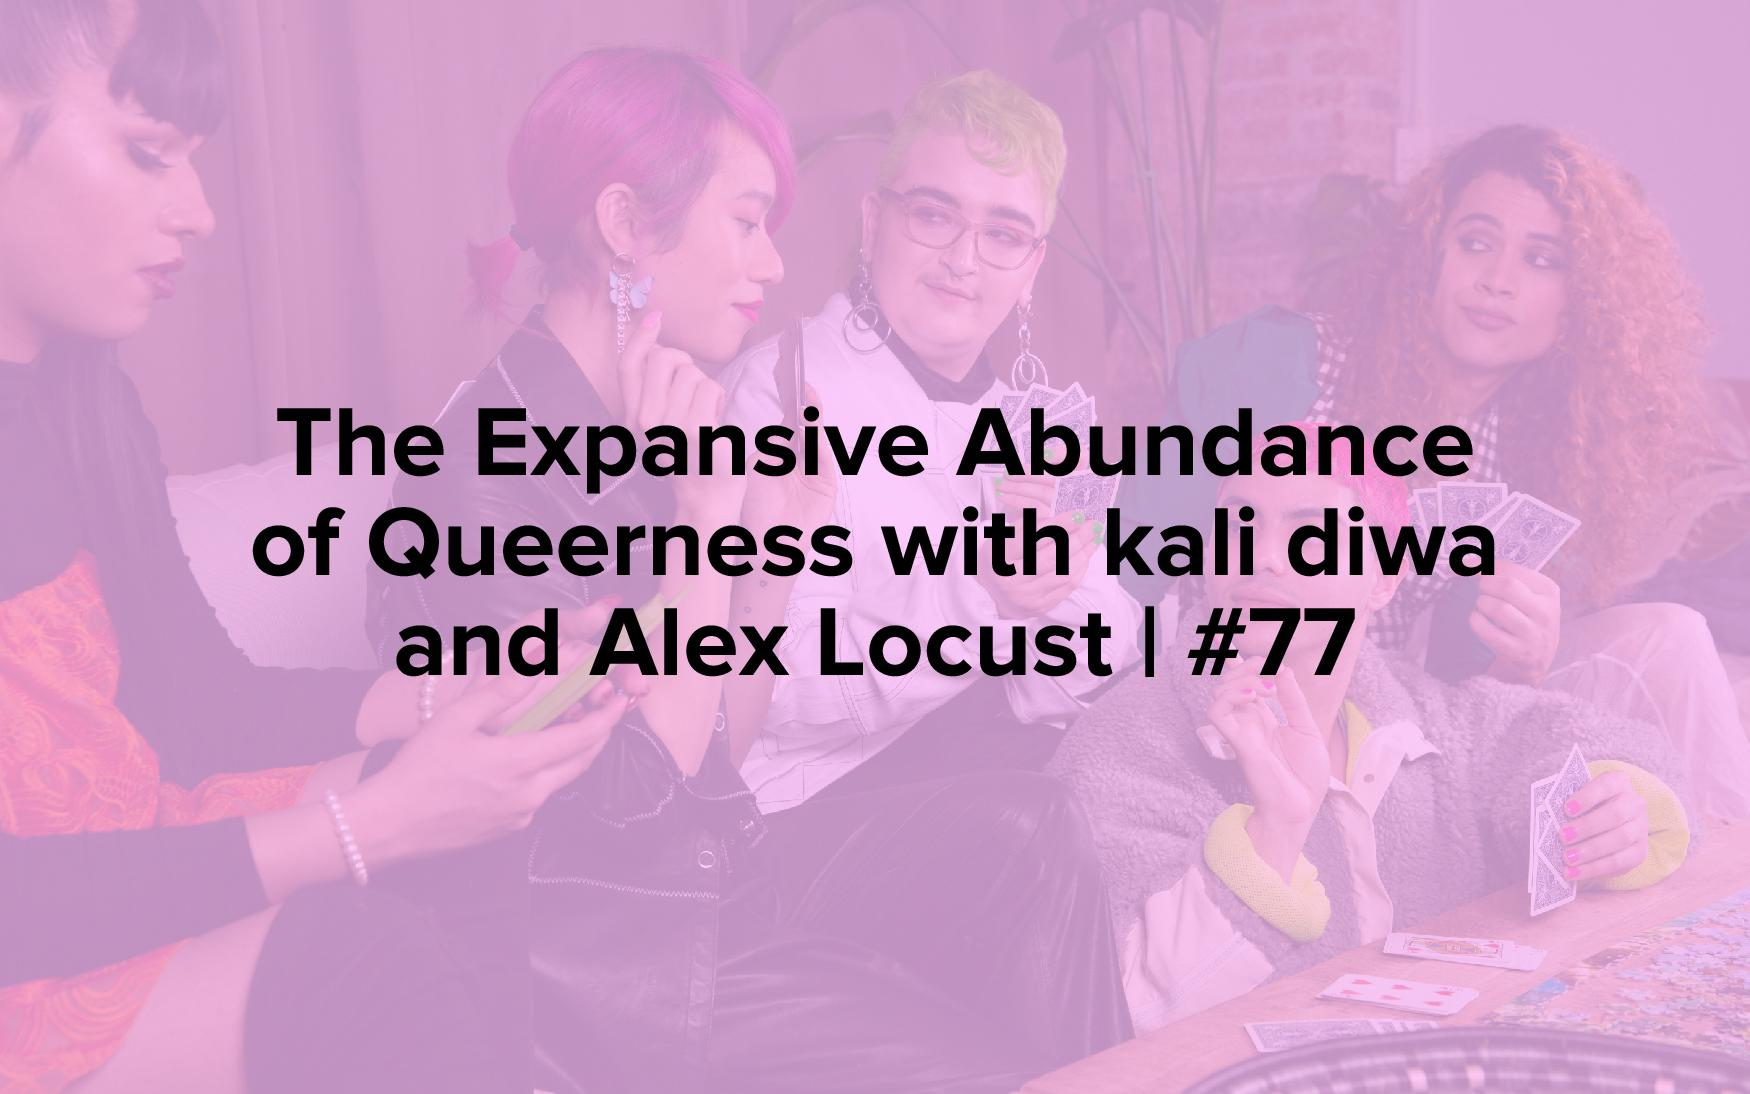 """The words, """"The Expansive Abundance of Queerness with kali diwa and Alex Locust 